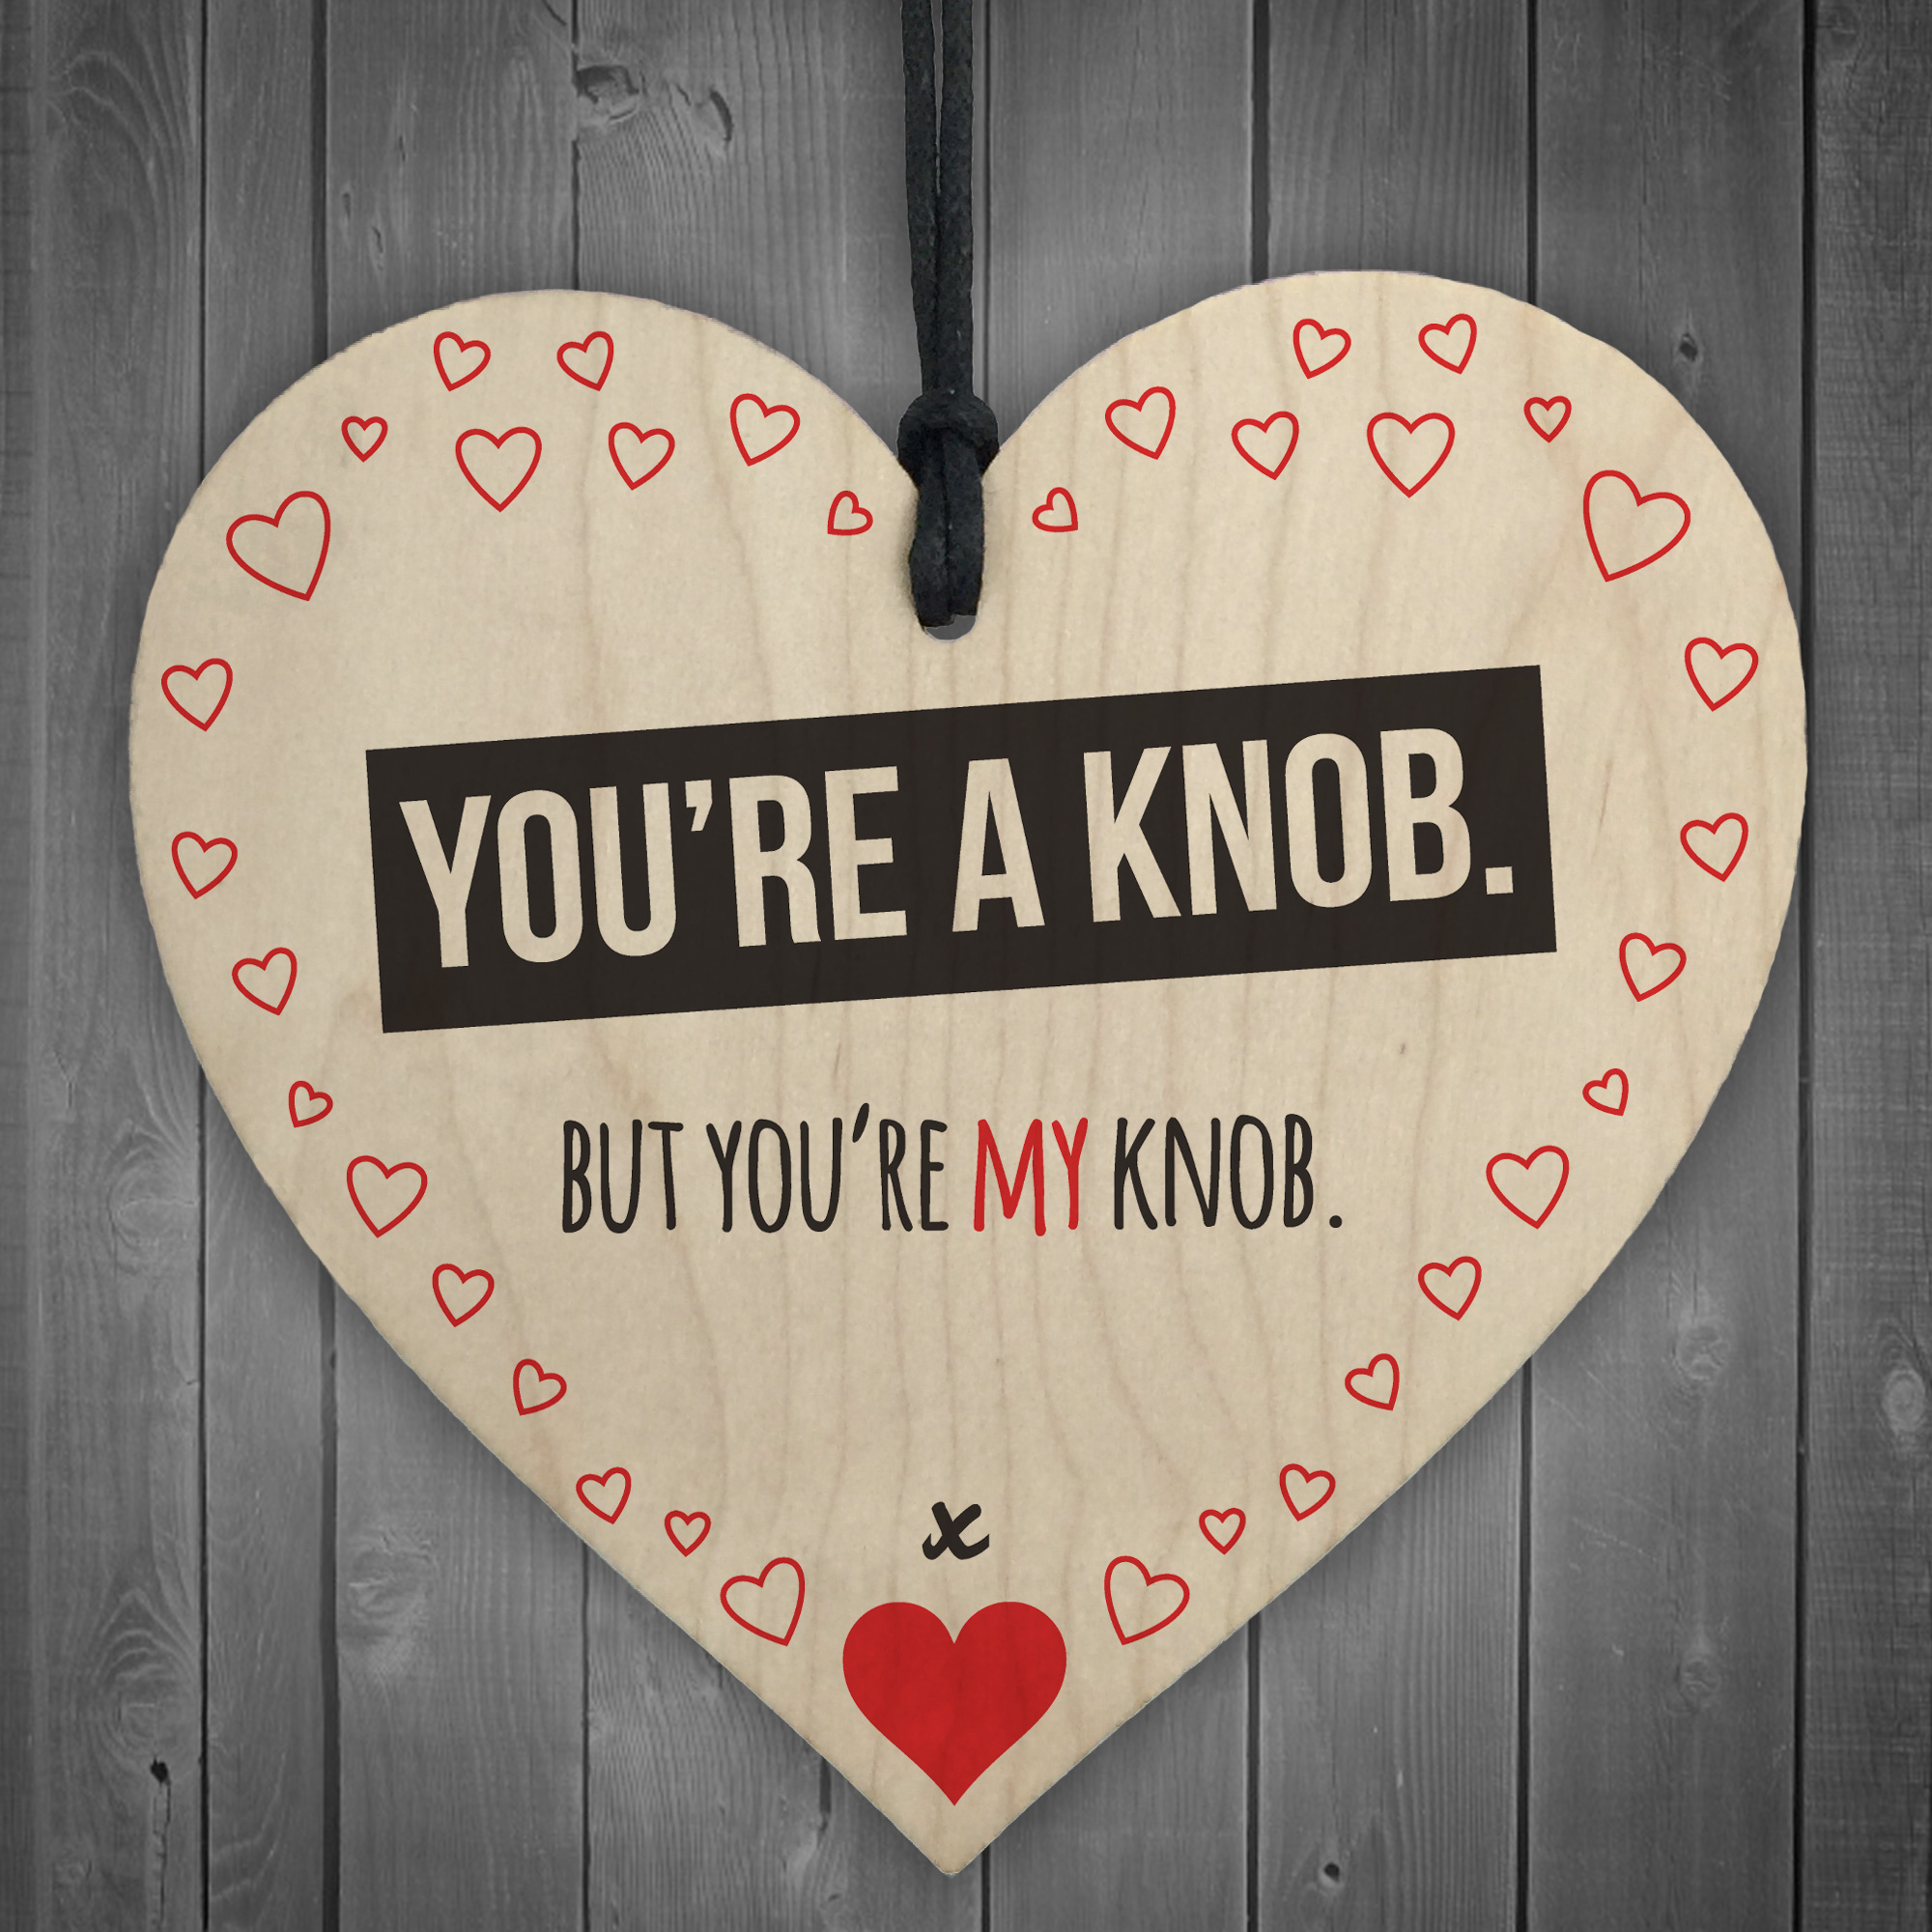 You Re A Knob But You Re My Knob Wooden Heart Valentines Gift For